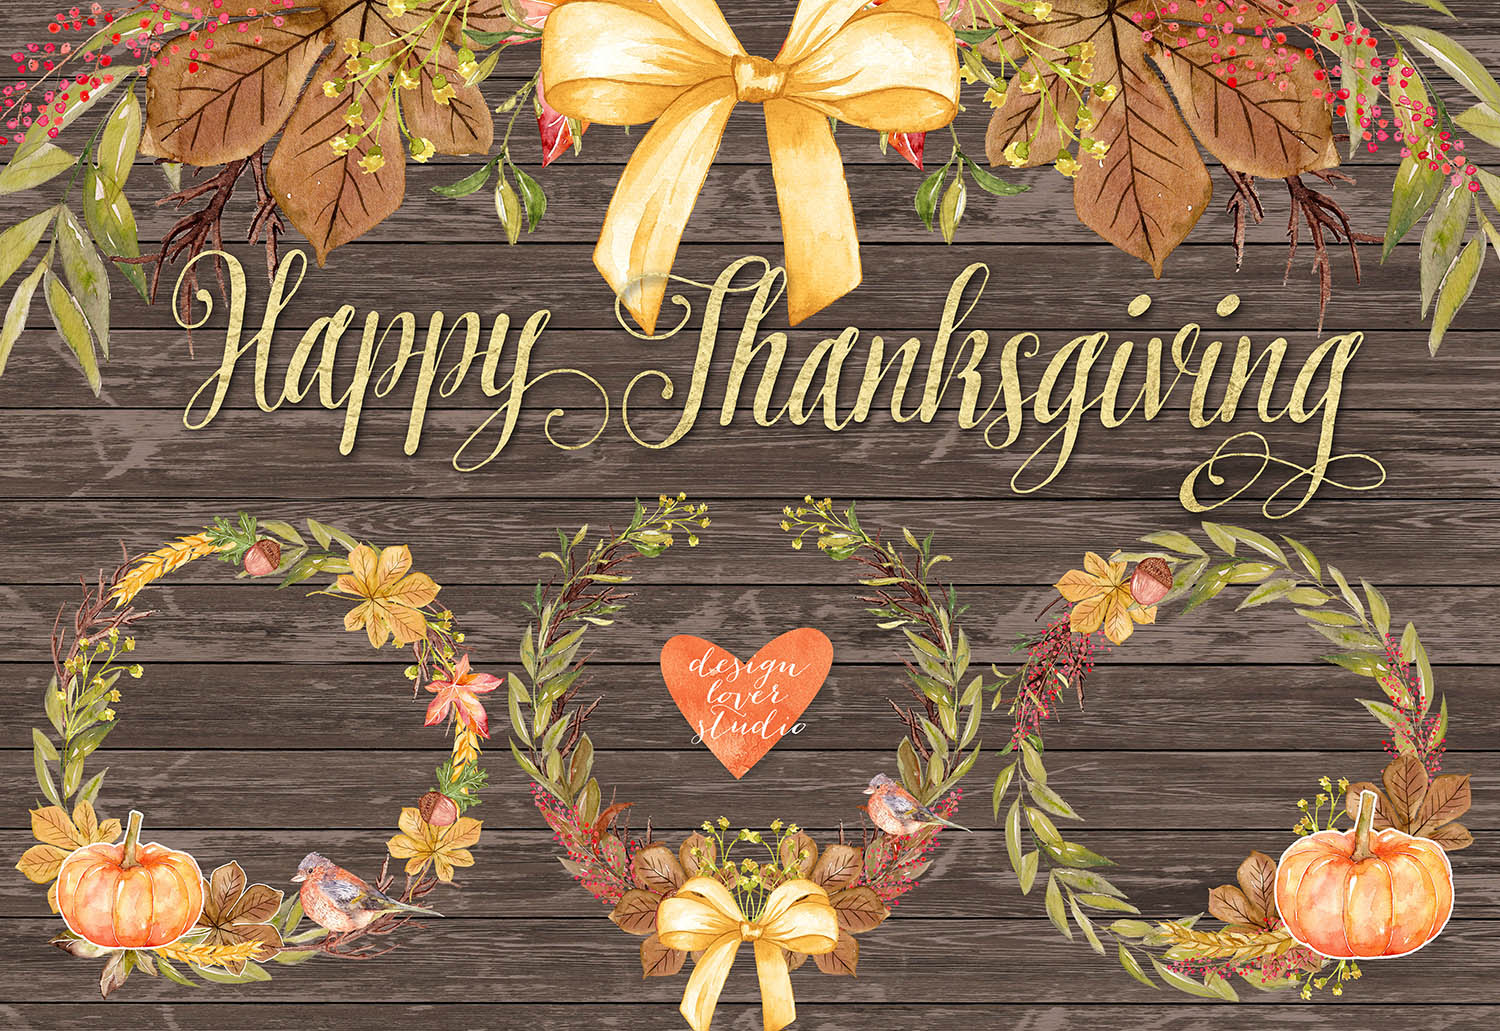 Watercolor Happy Thanksgiving cliparts example image 5